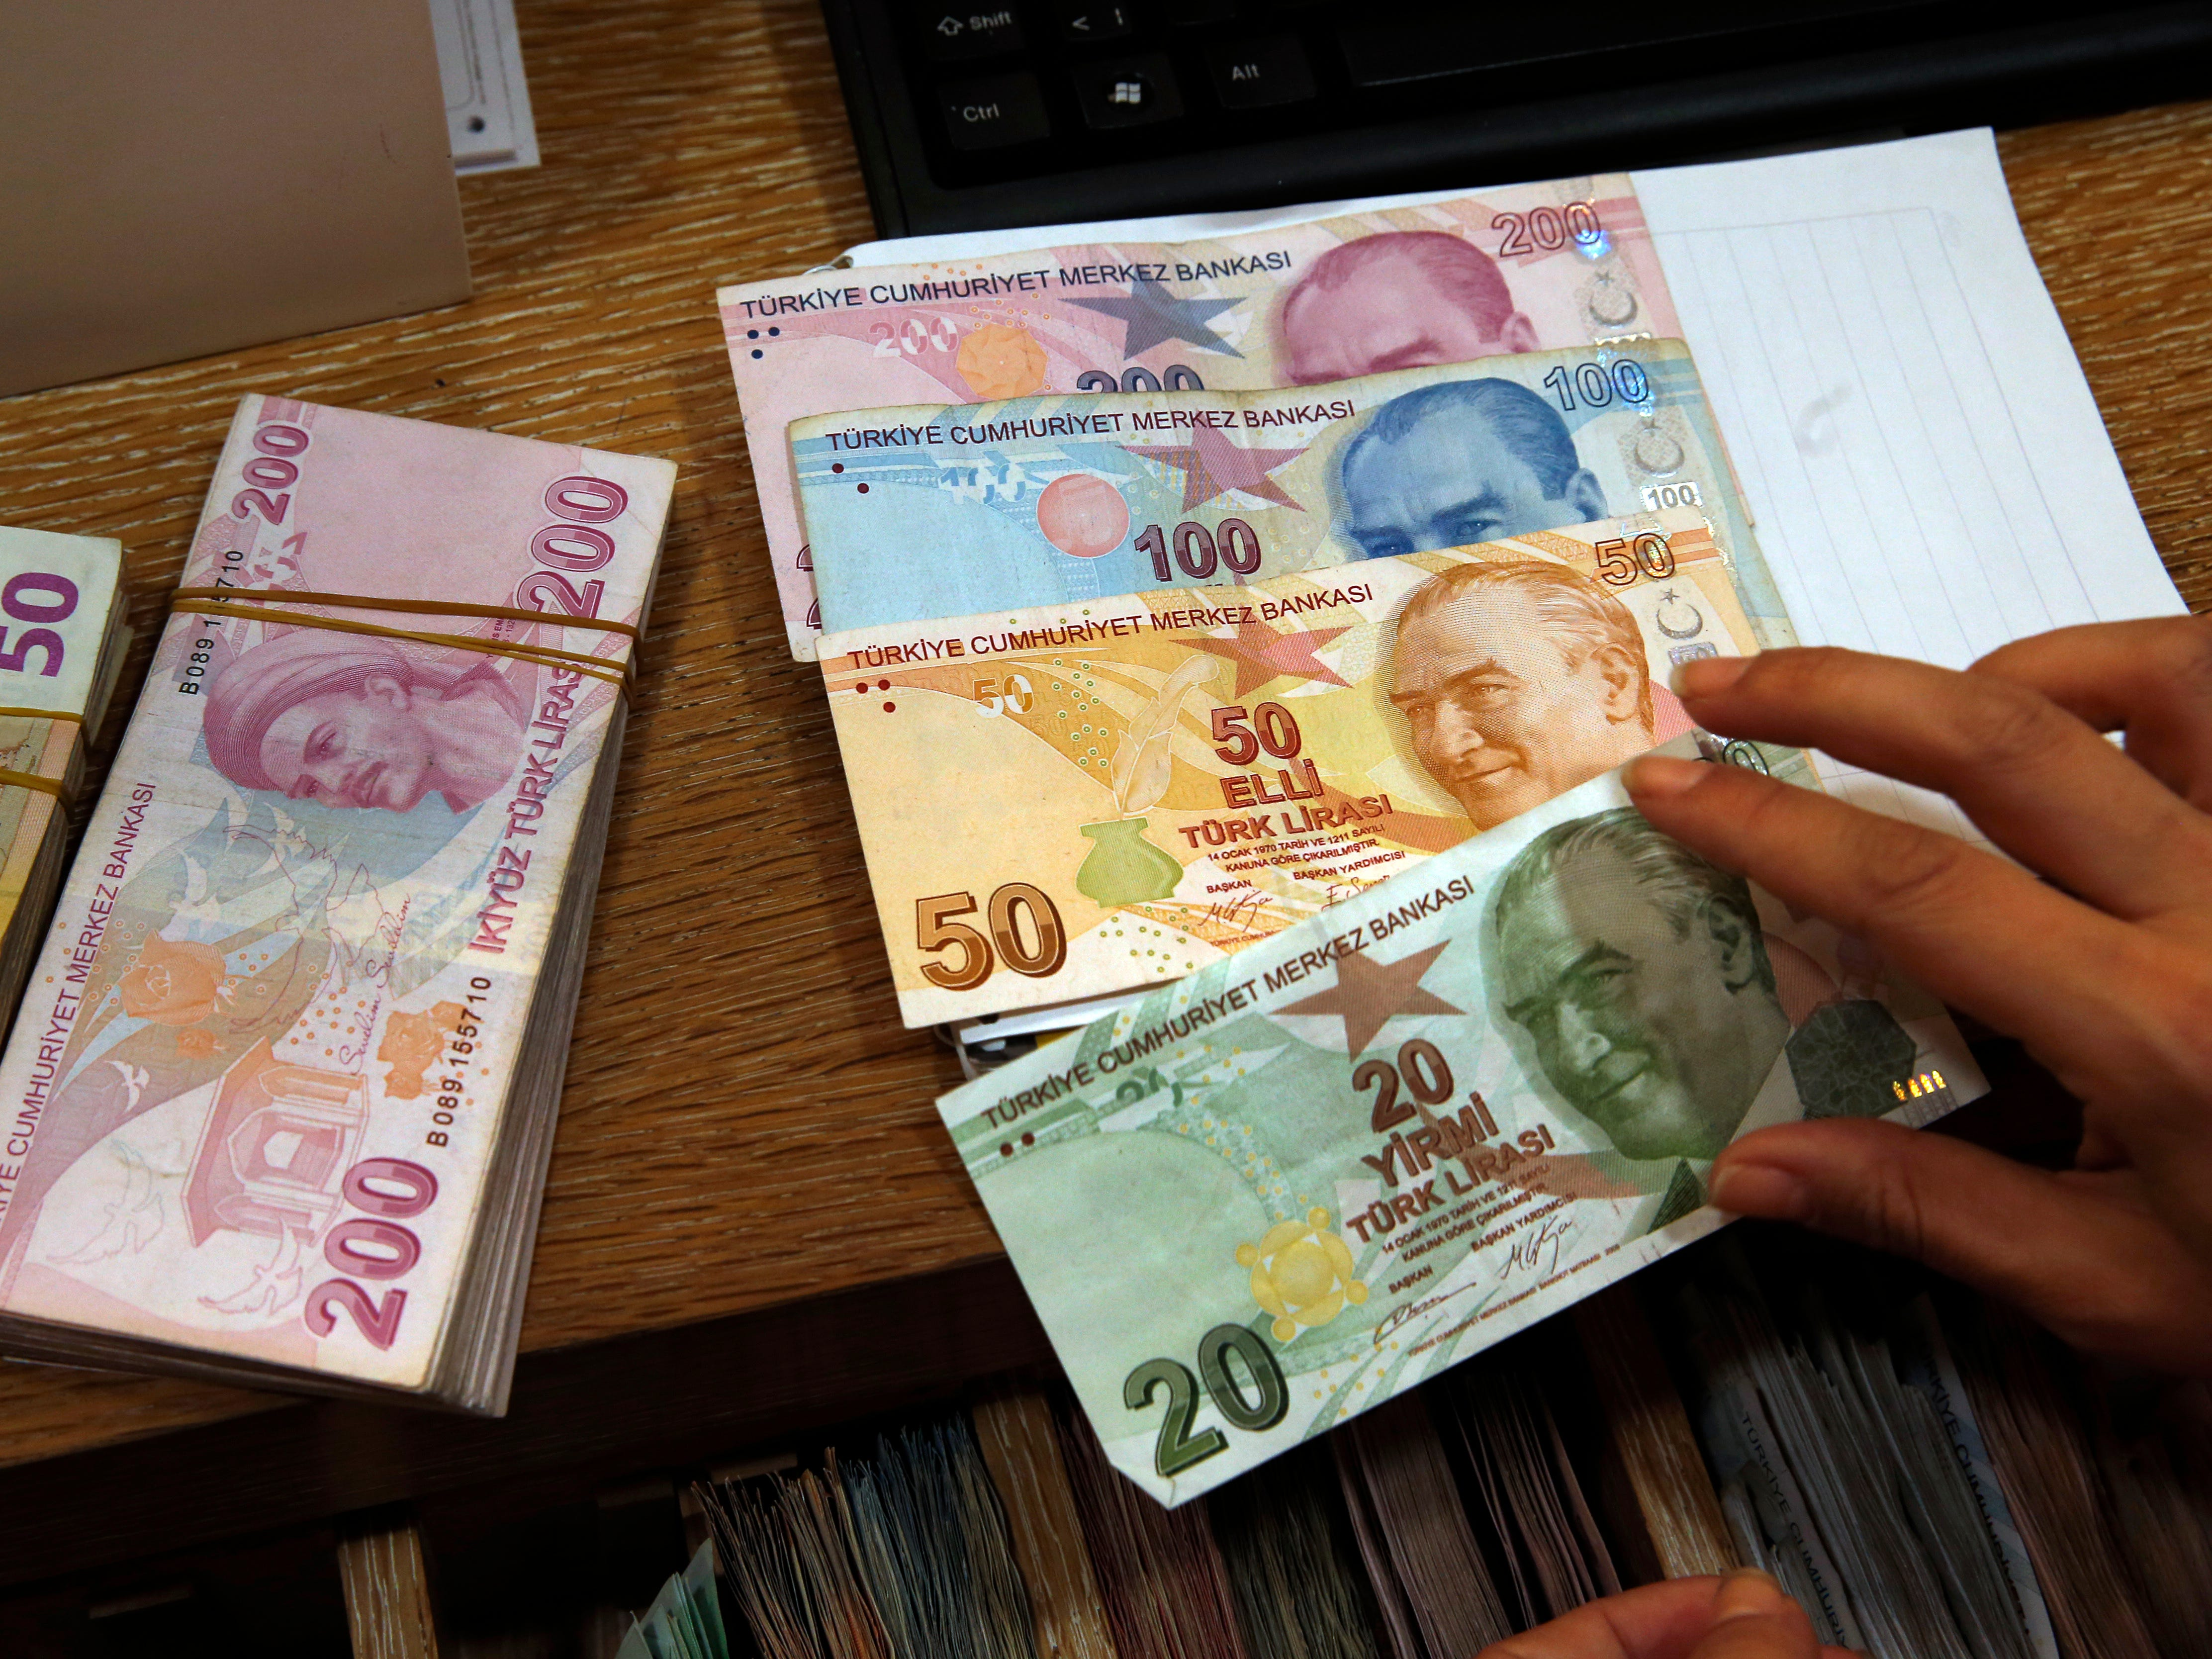 A worker at a currency exchange shop worker lays out Turkish lira banknotes depicting modern Turkey's founder Mustafa Kemal Ataturk, in Istanbul, Aug. 15, 2018.